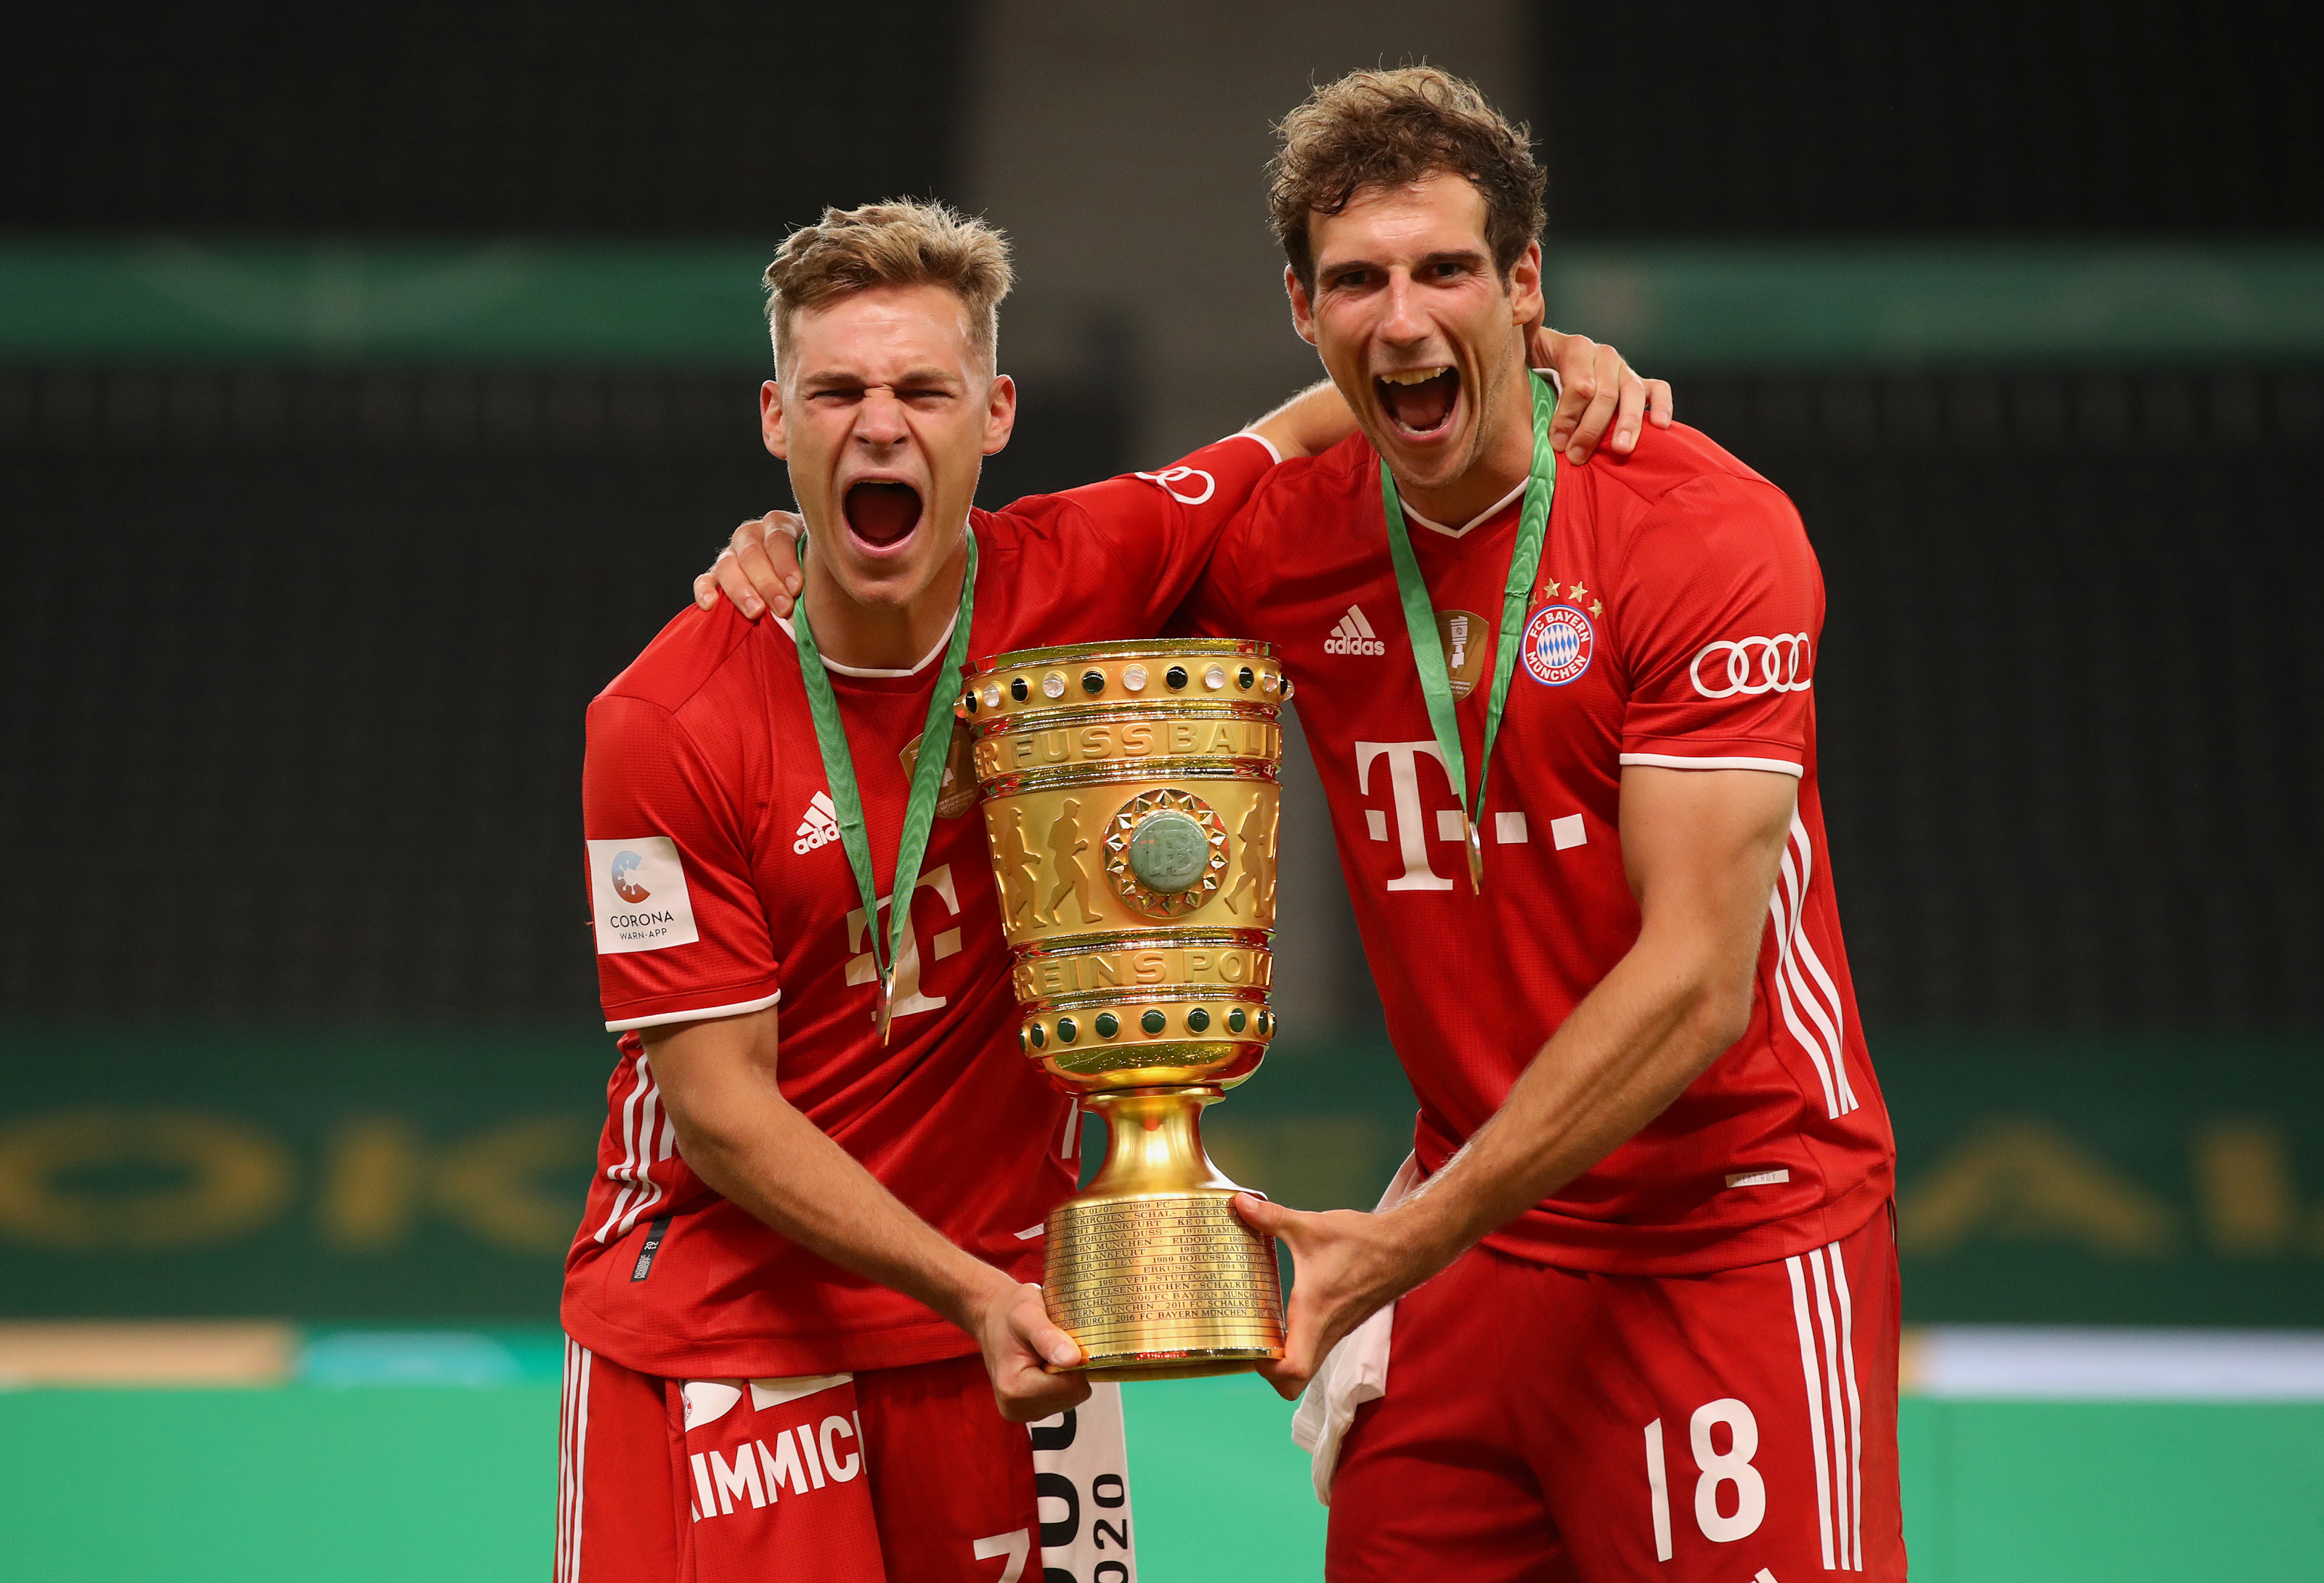 Bayern Munich start working on securing futures of key players